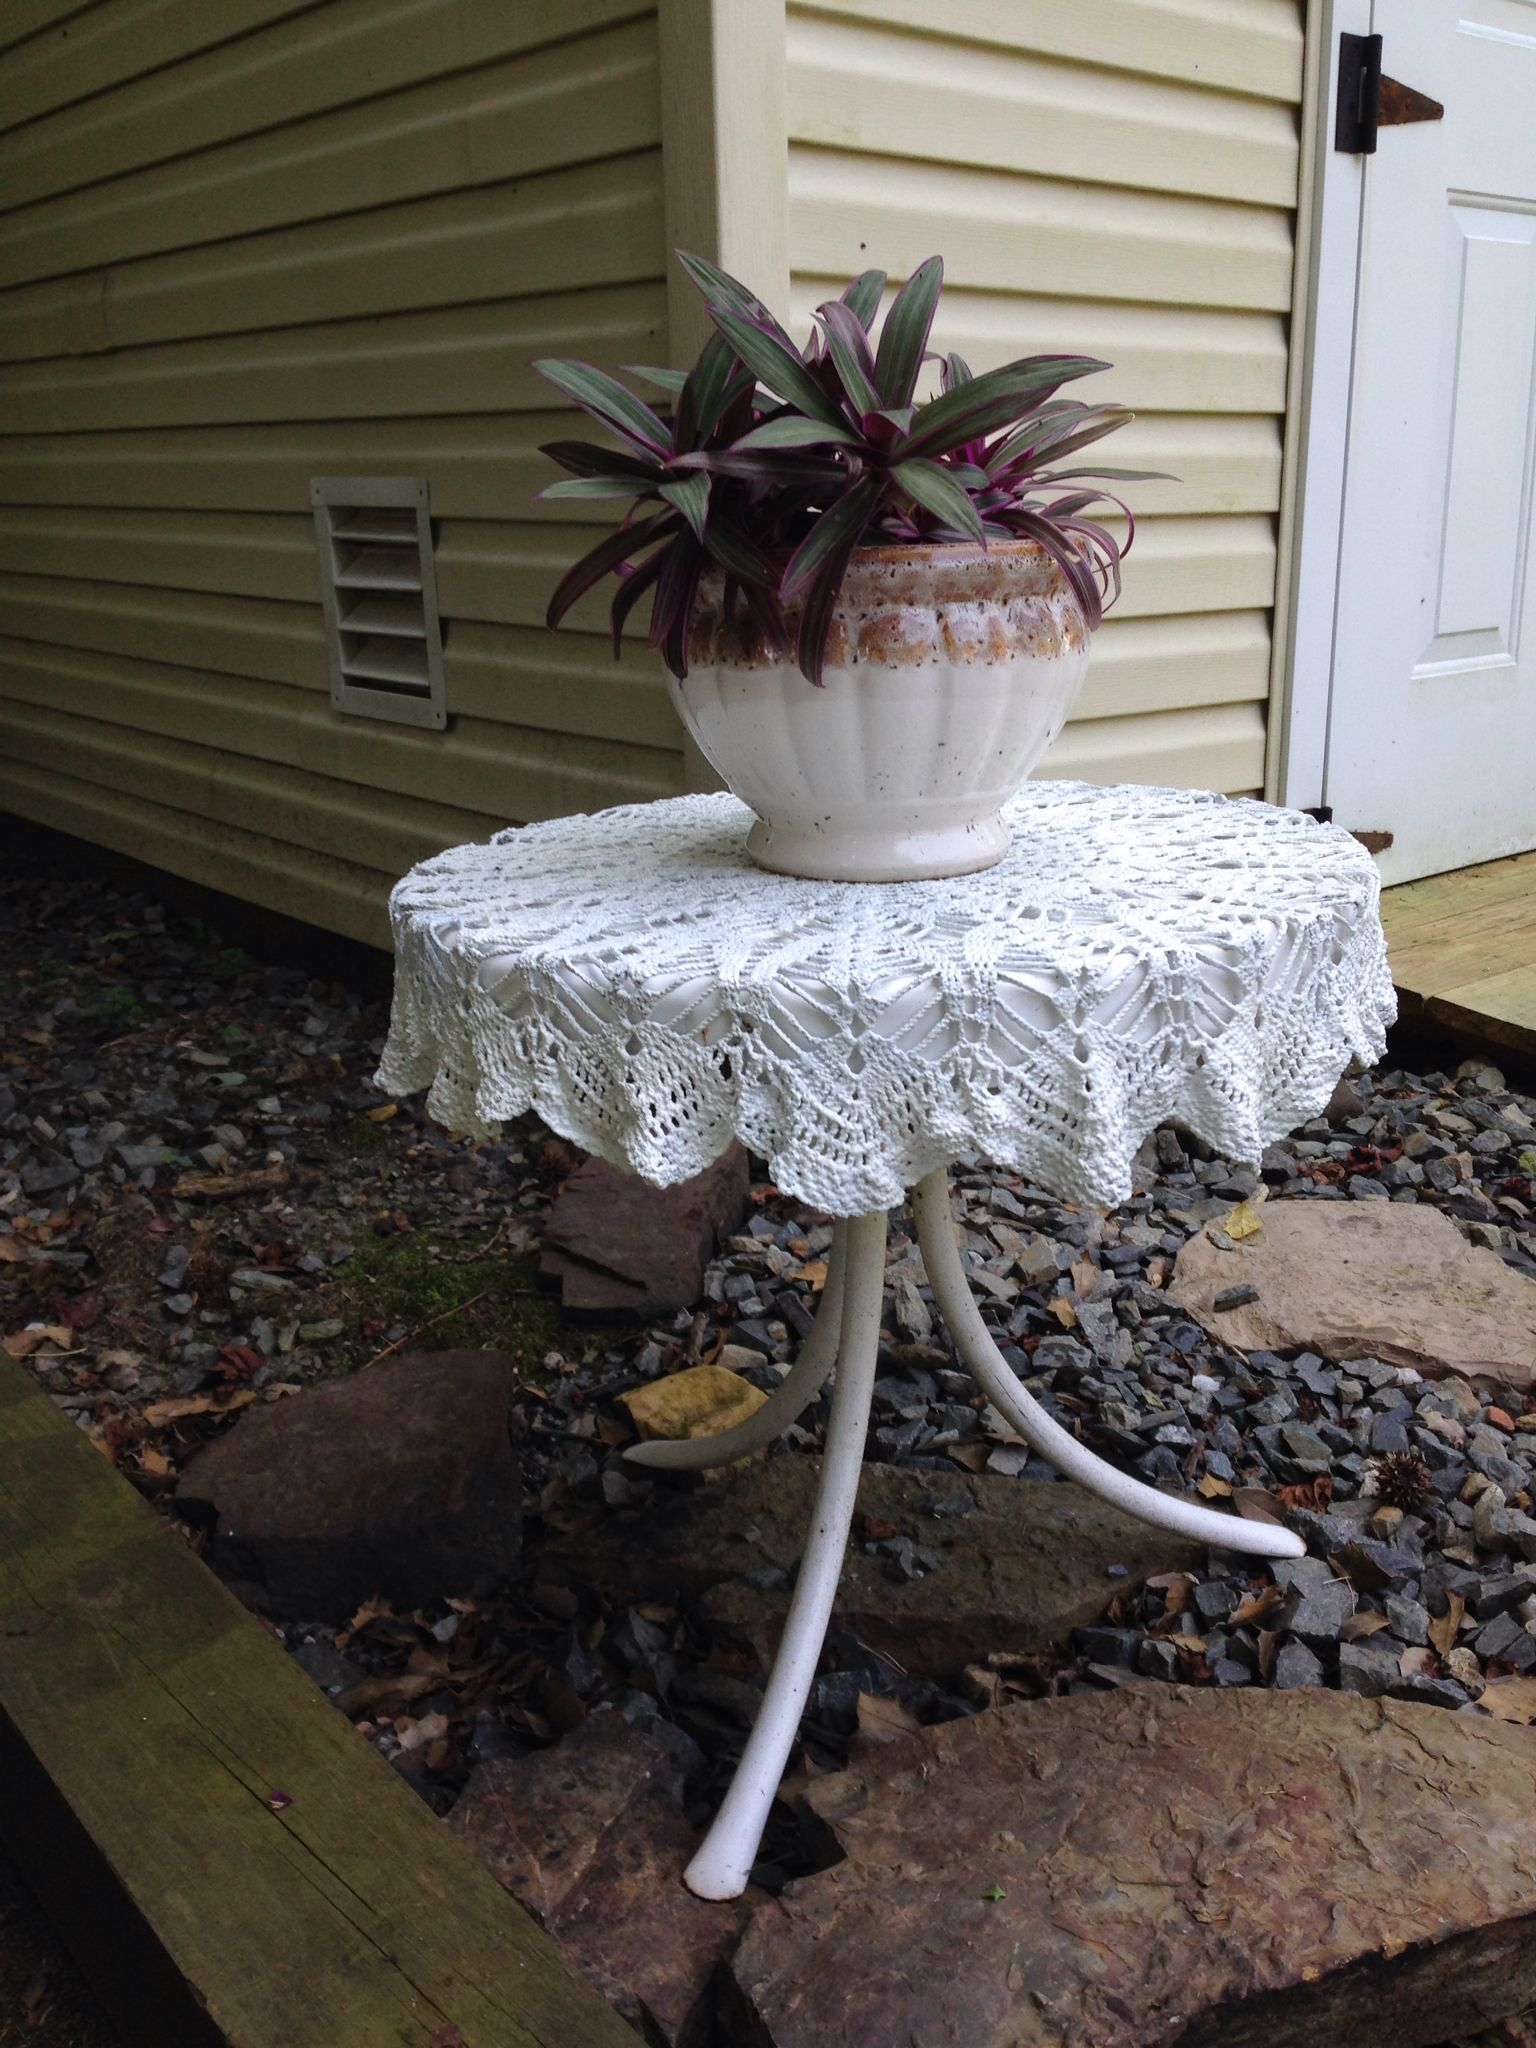 Crochet Lace Tablecloth Dipped In Cement Crochet